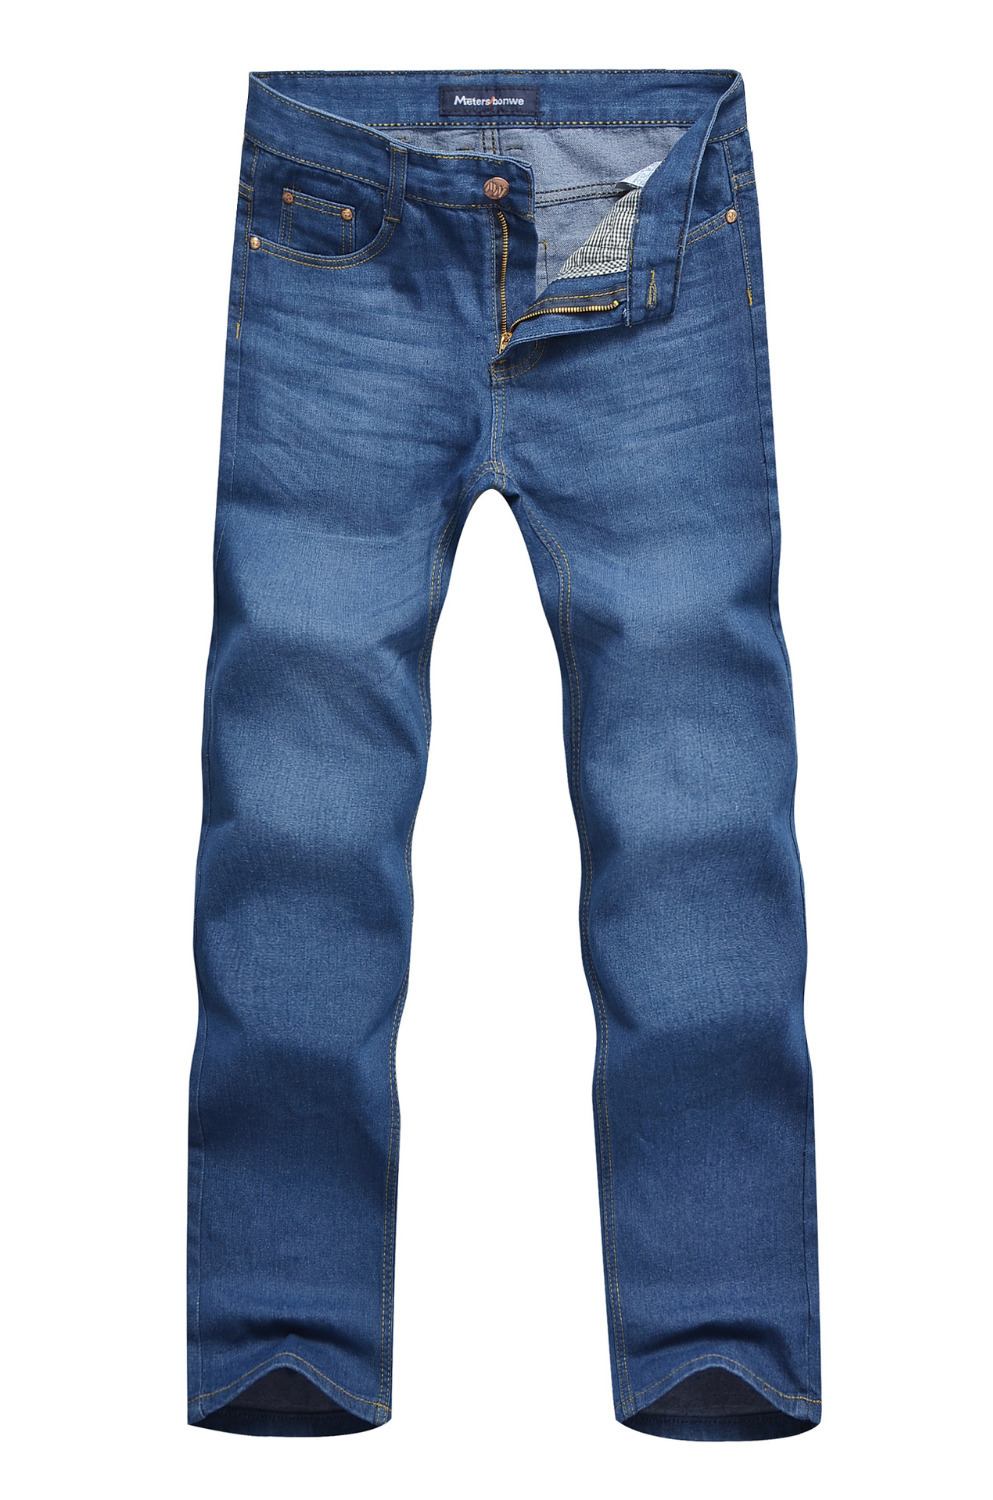 Since , Wrangler's jeans for men have been the American standard for comfort and durability. Browse men's jeans by fit, rise, size, price and more. Skip to main content. Homepage Plus Size Exclusives Sale Shop Now. Kids Shop All Kids. Boys Shop All Boys. Jeans & Pants Shirts Shorts Accessories VIEW ALL By Size Shop All By Size.